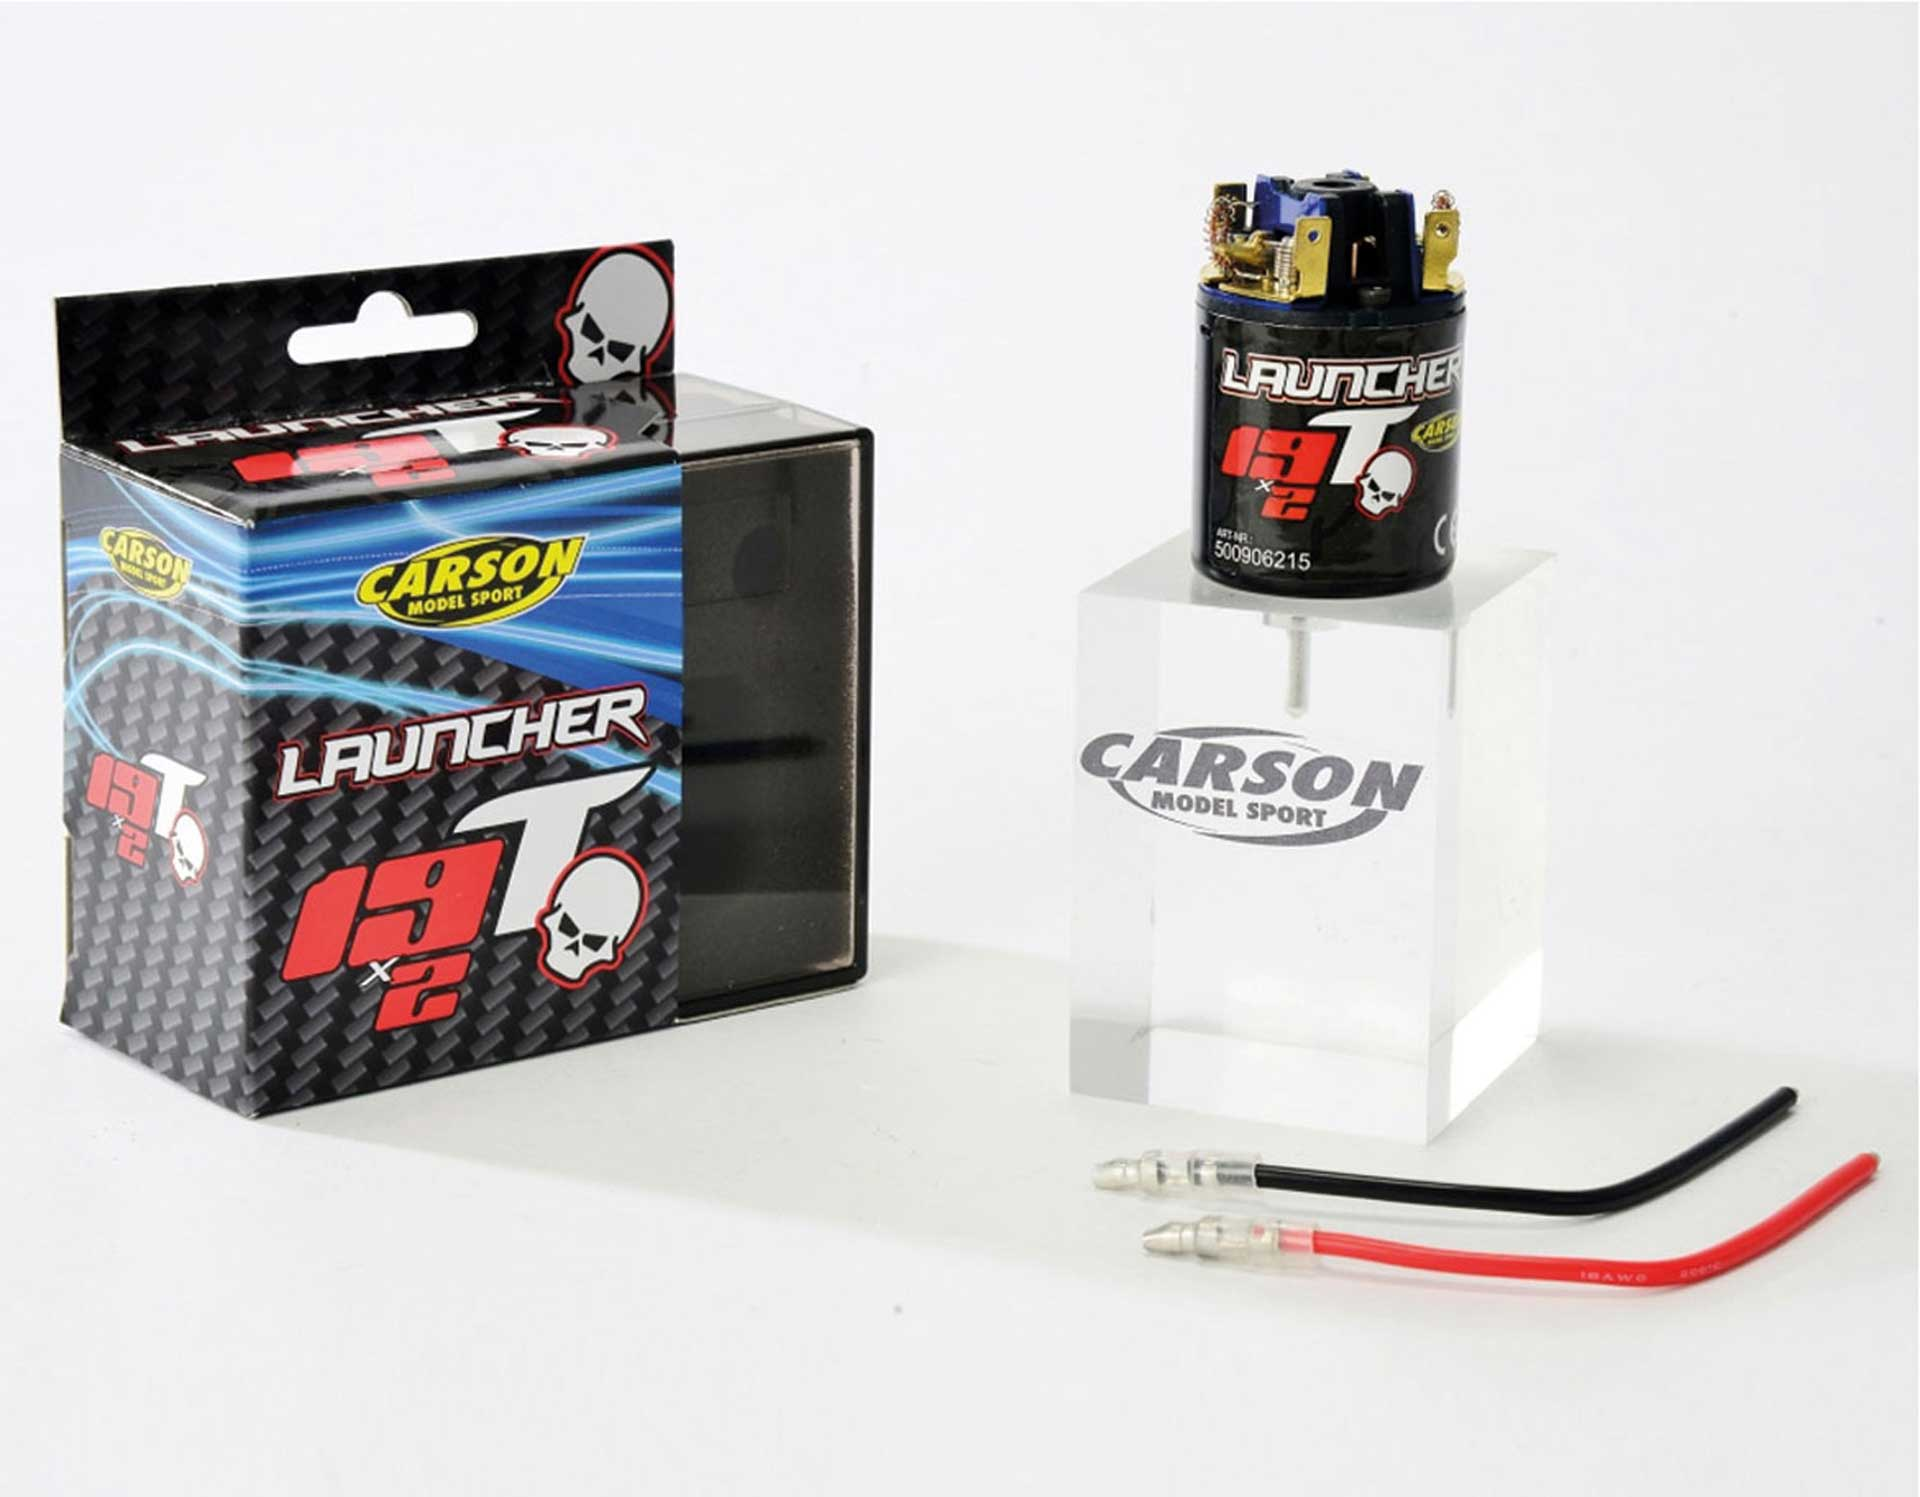 CARSON LAUNCHER 19X2T TUNING ELECTROMOTOR BRUSHED 540